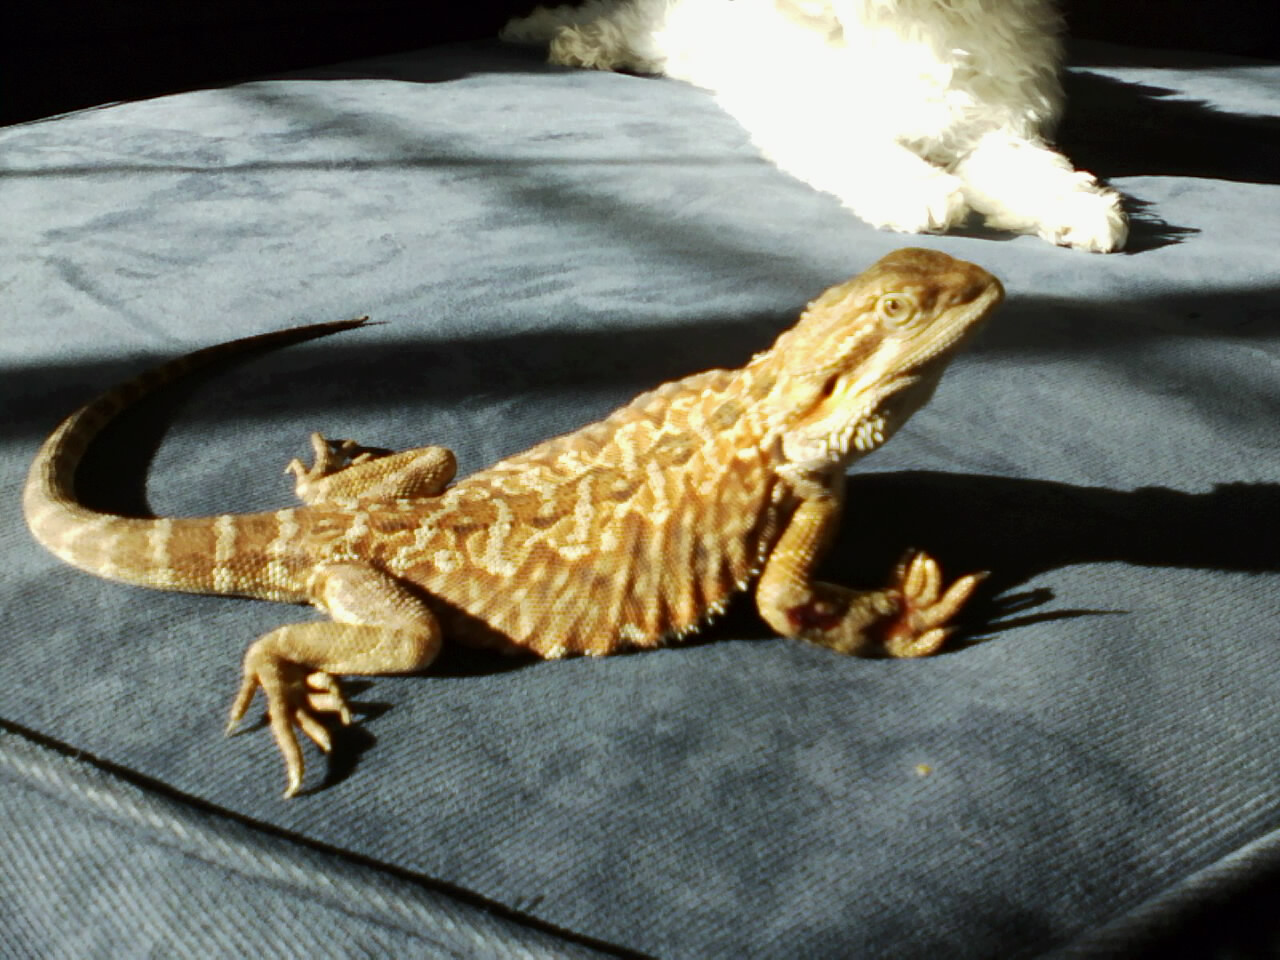 Sarah S Bearded Dragon Rescue Nigel My Very First And